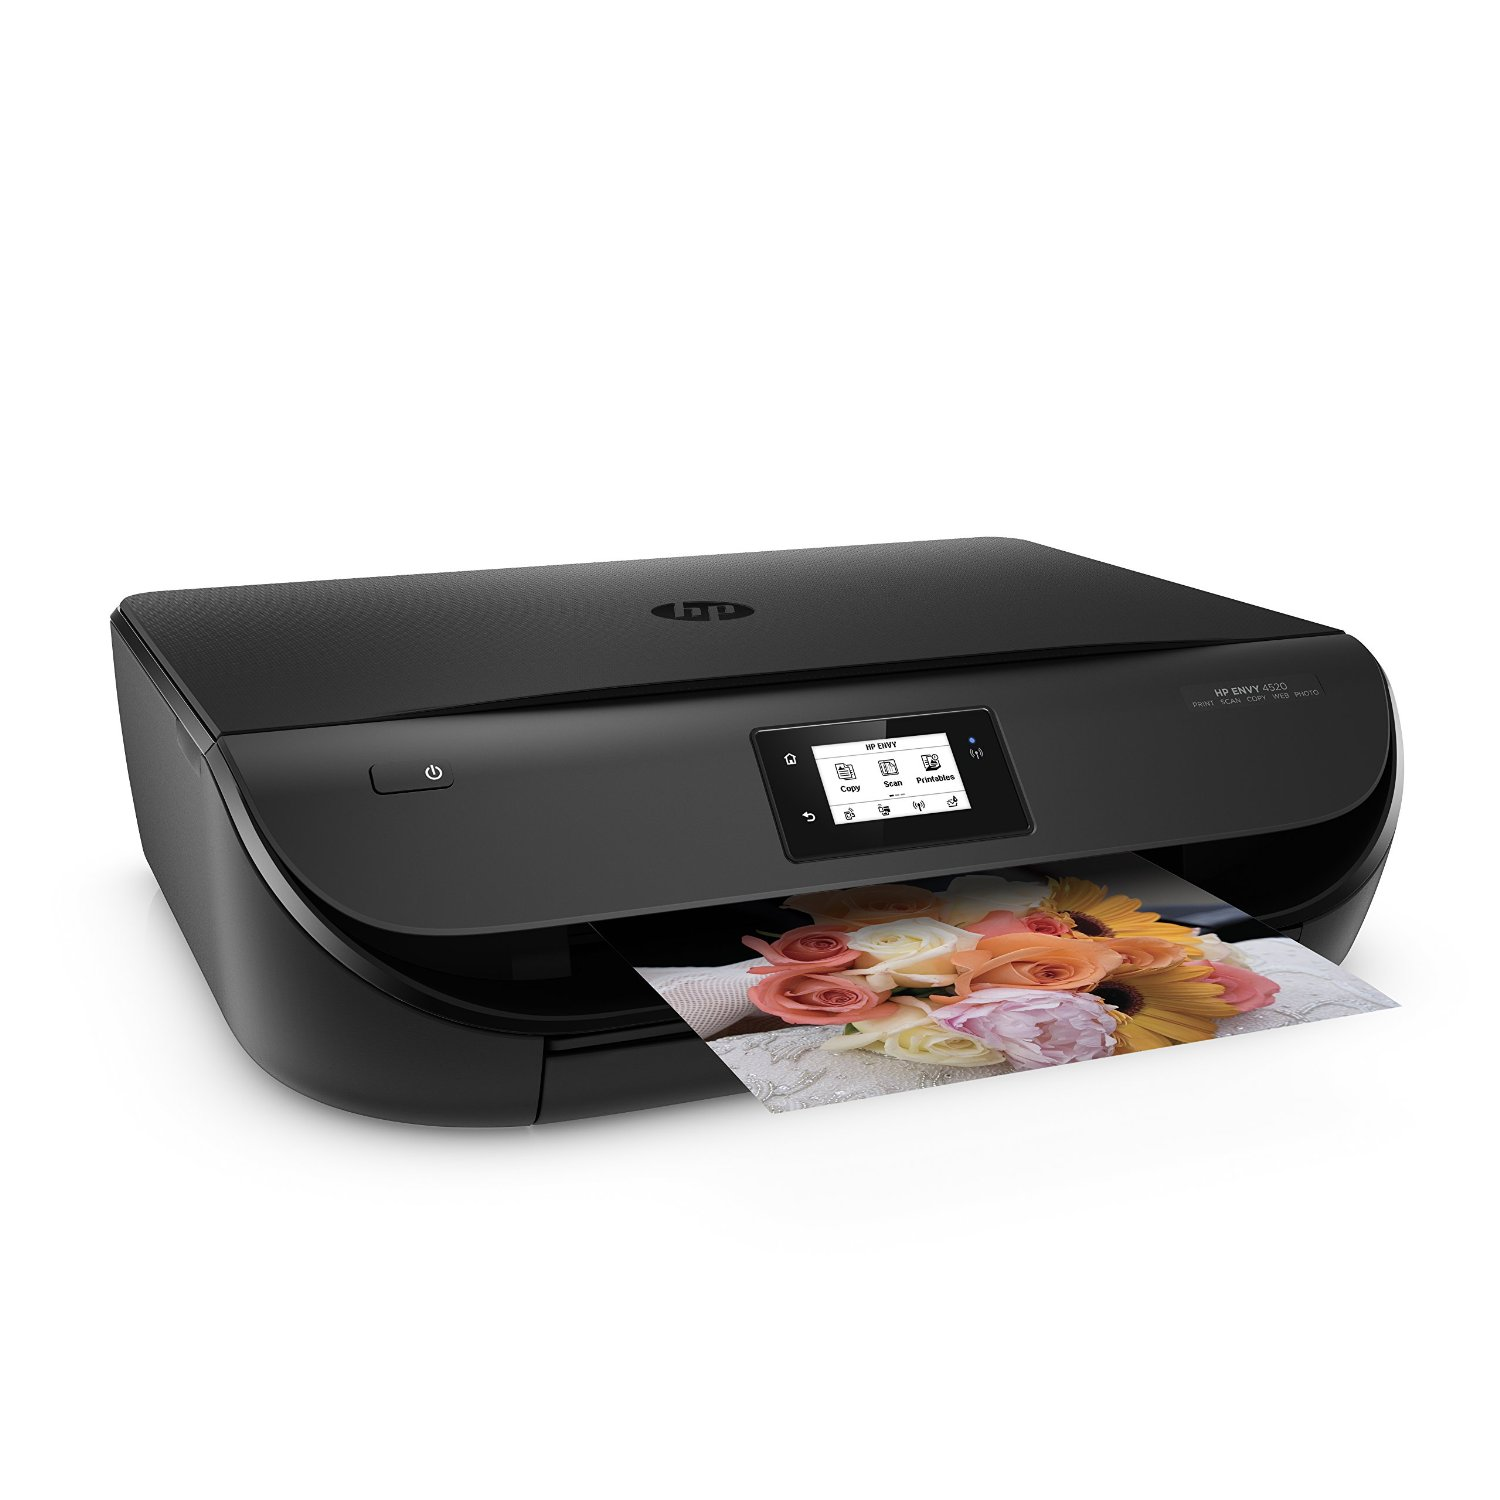 HP Envy 4520 All-in-One Wireless Printer